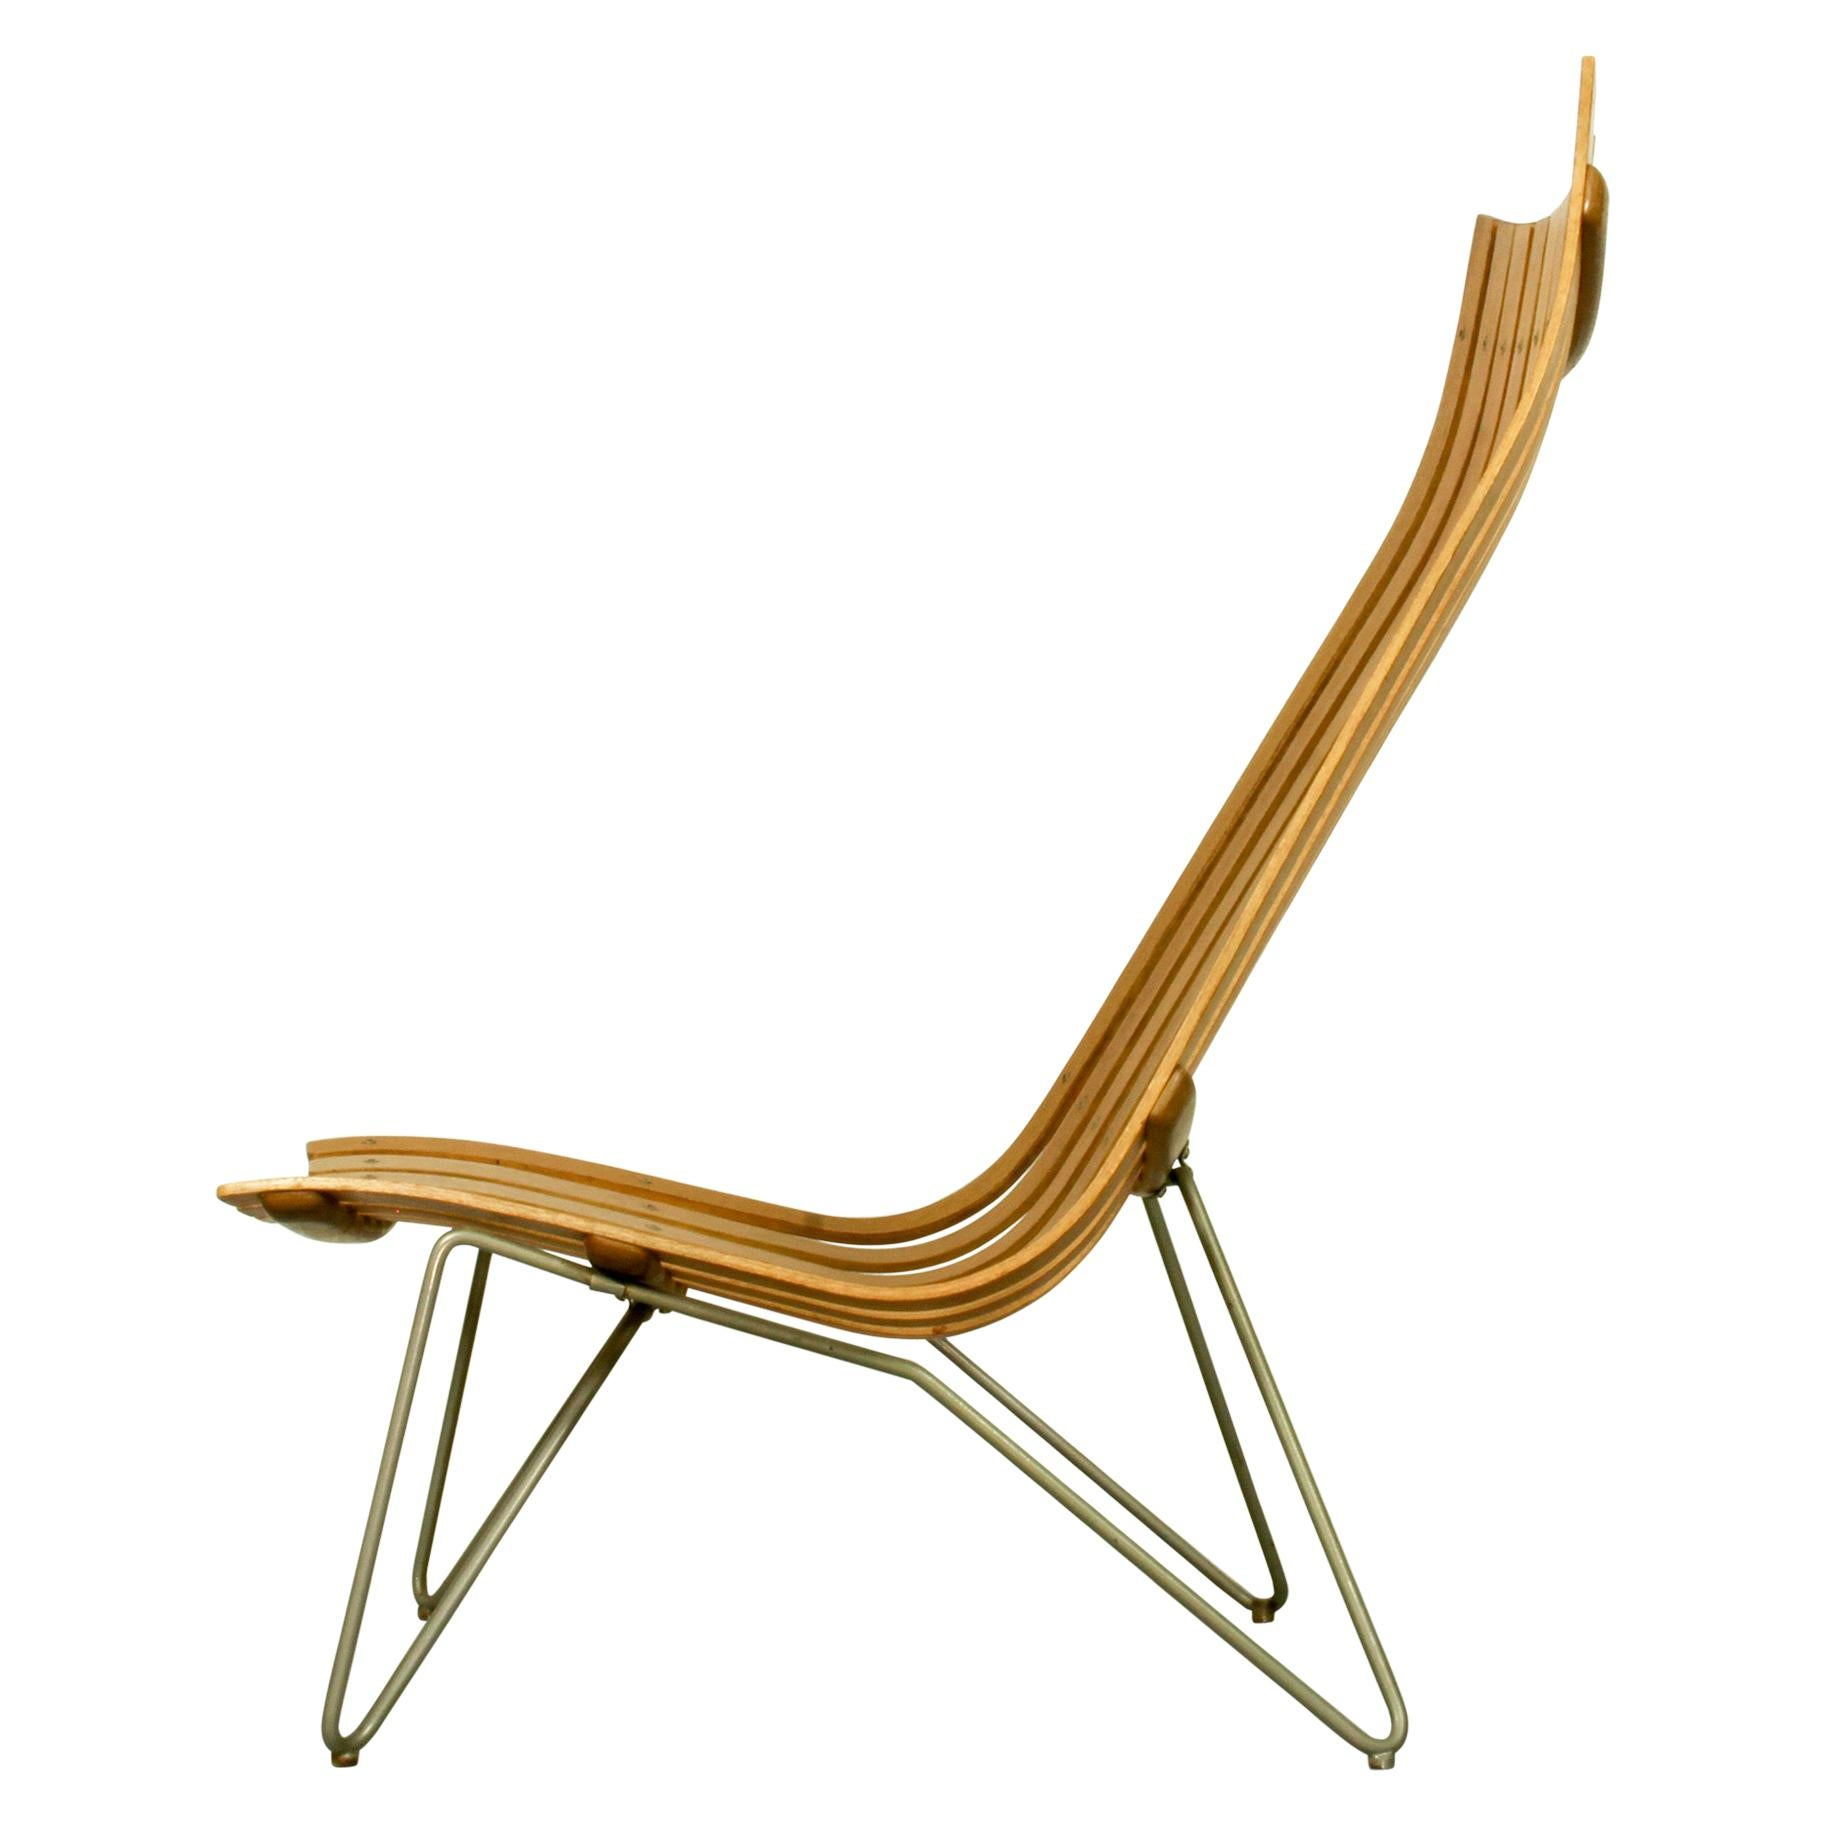 Scandia Lounge Chair by Hans Brattrud for Hove Mobler, 1960s